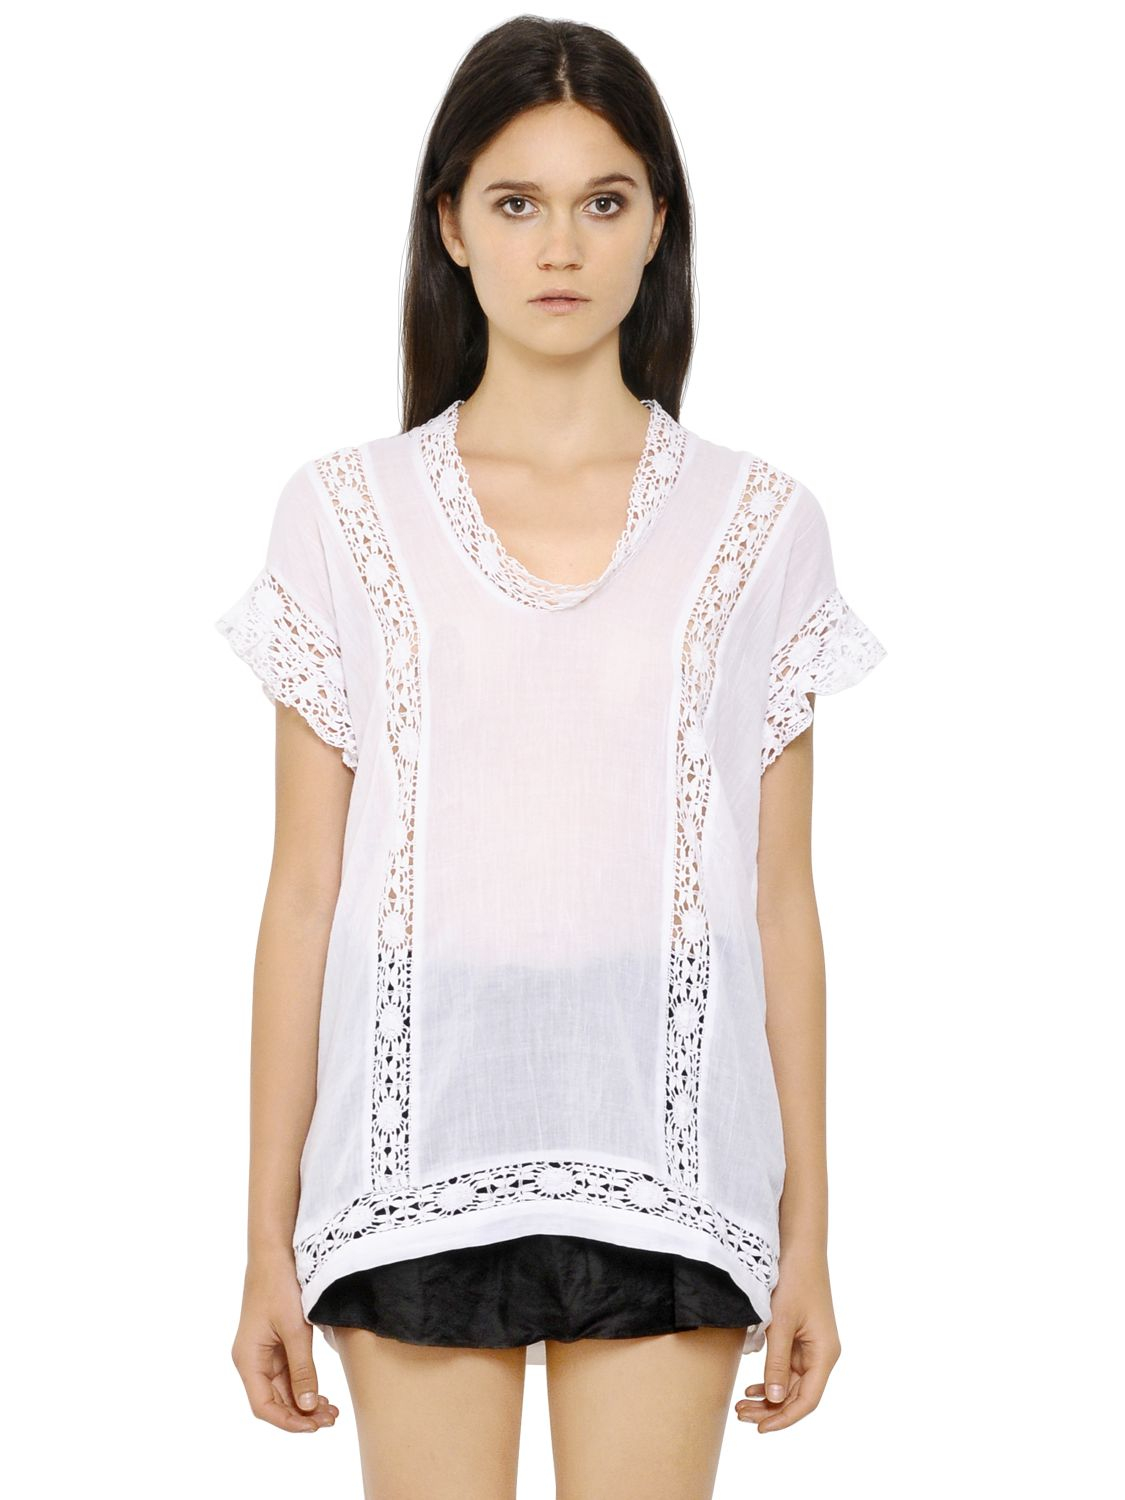 lyst toile isabel marant cotton voile crochet top in white. Black Bedroom Furniture Sets. Home Design Ideas